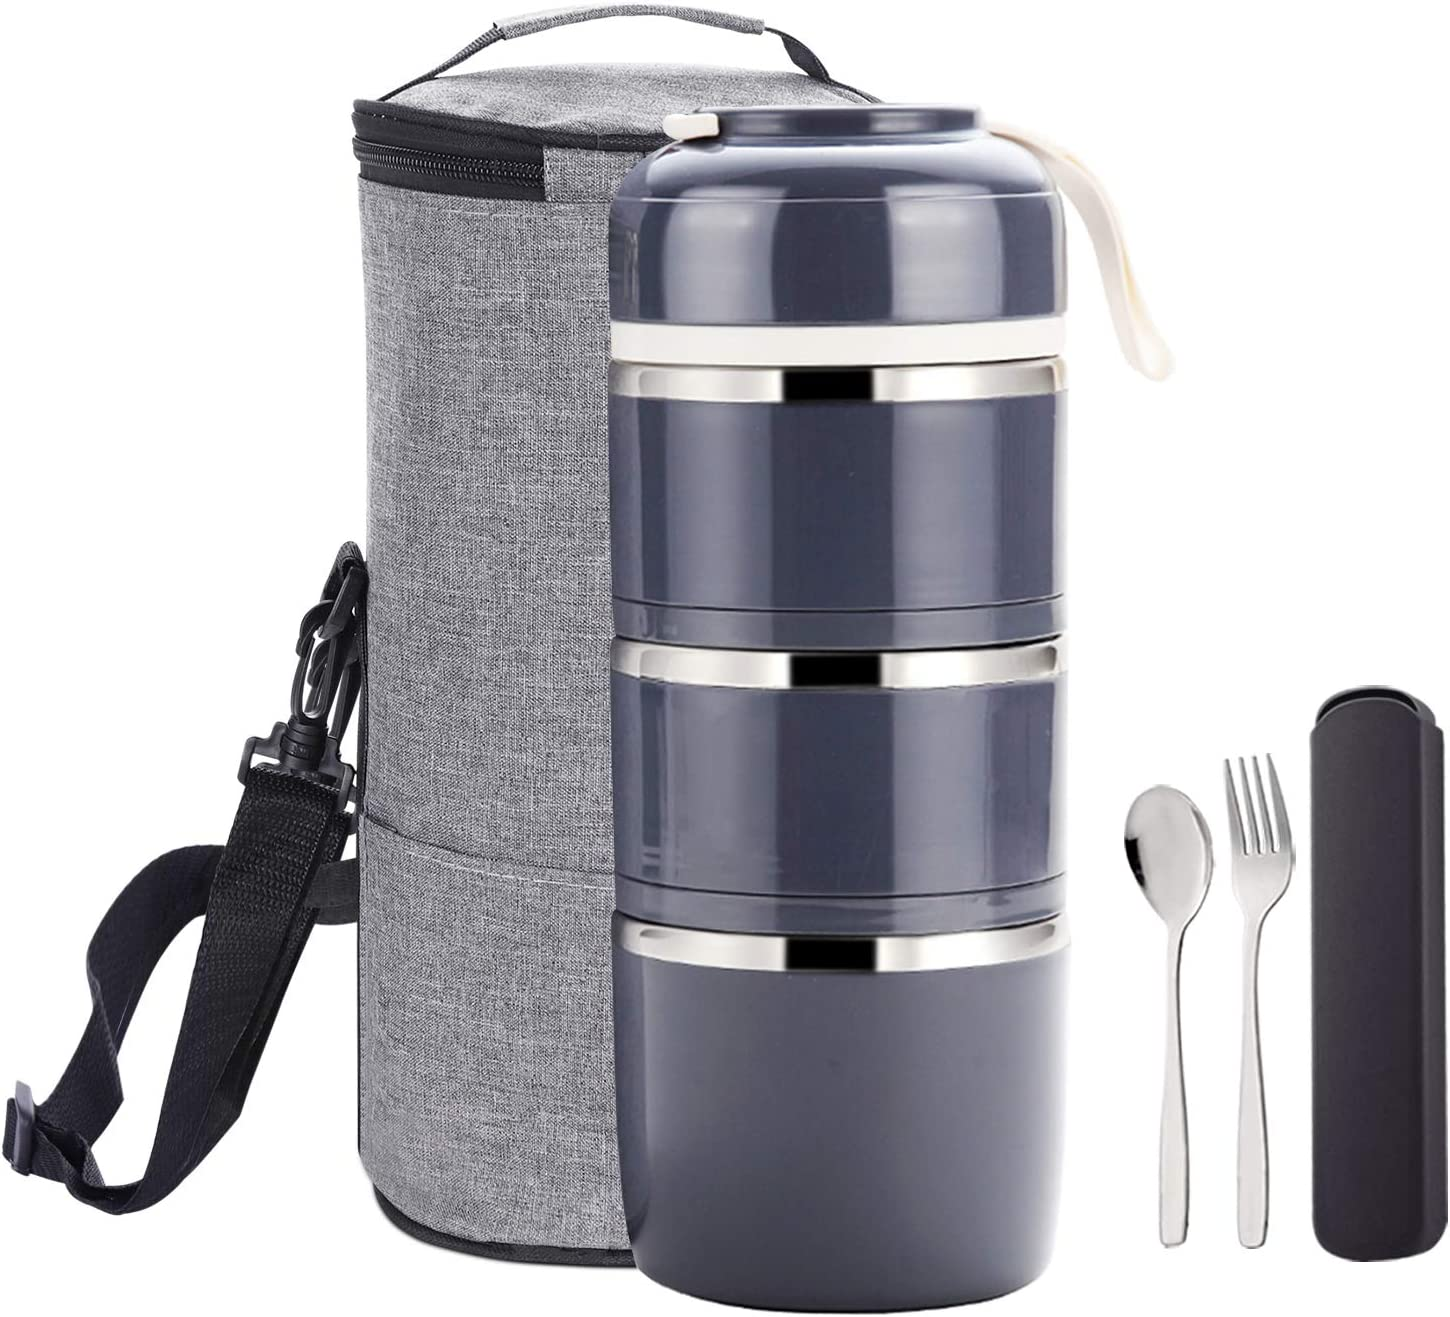 YBOBK HOME Bento Stackable Lunch Box Stainless Steel Thermal Compartment Multi-layered Leakproof Lunch Containers Insulated Bento Box Tower with Lunch Bag and Utensil Set for Adult and Kids (Gray)